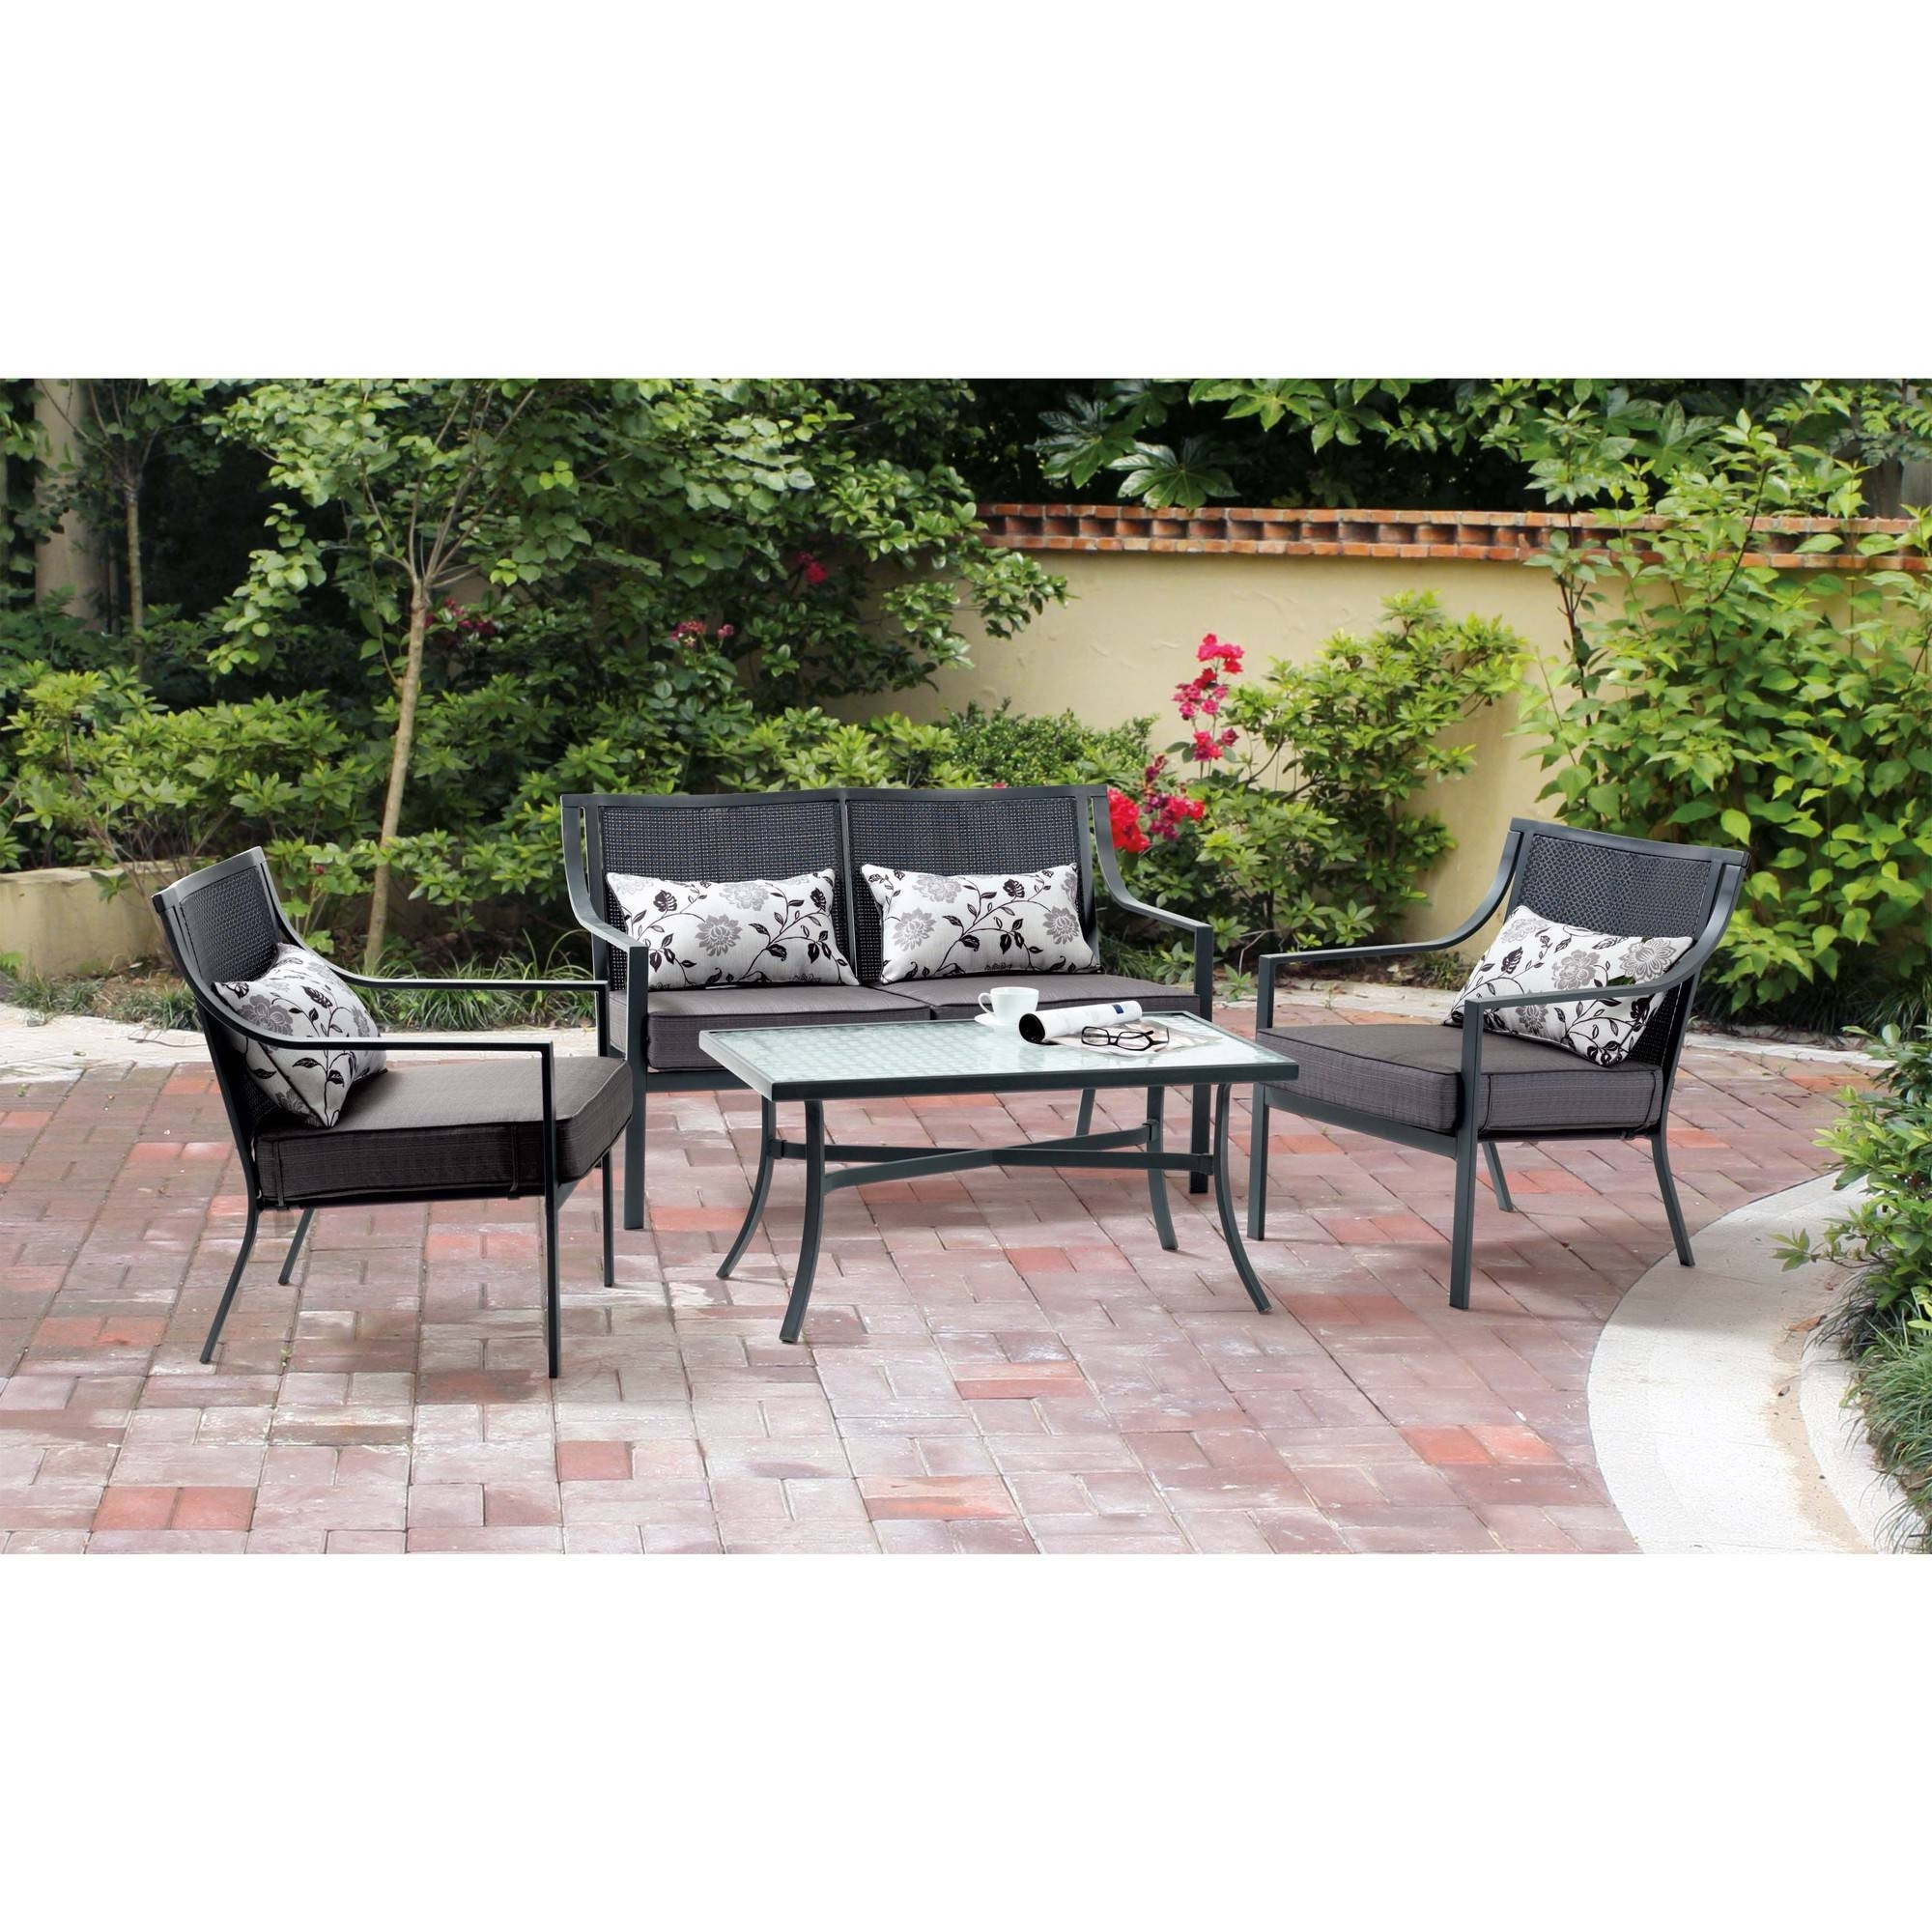 Popular Patio Conversation Sets Without Cushions With Regard To Patio Conversation Sets Without Cushions – Patio Ideas (View 16 of 20)